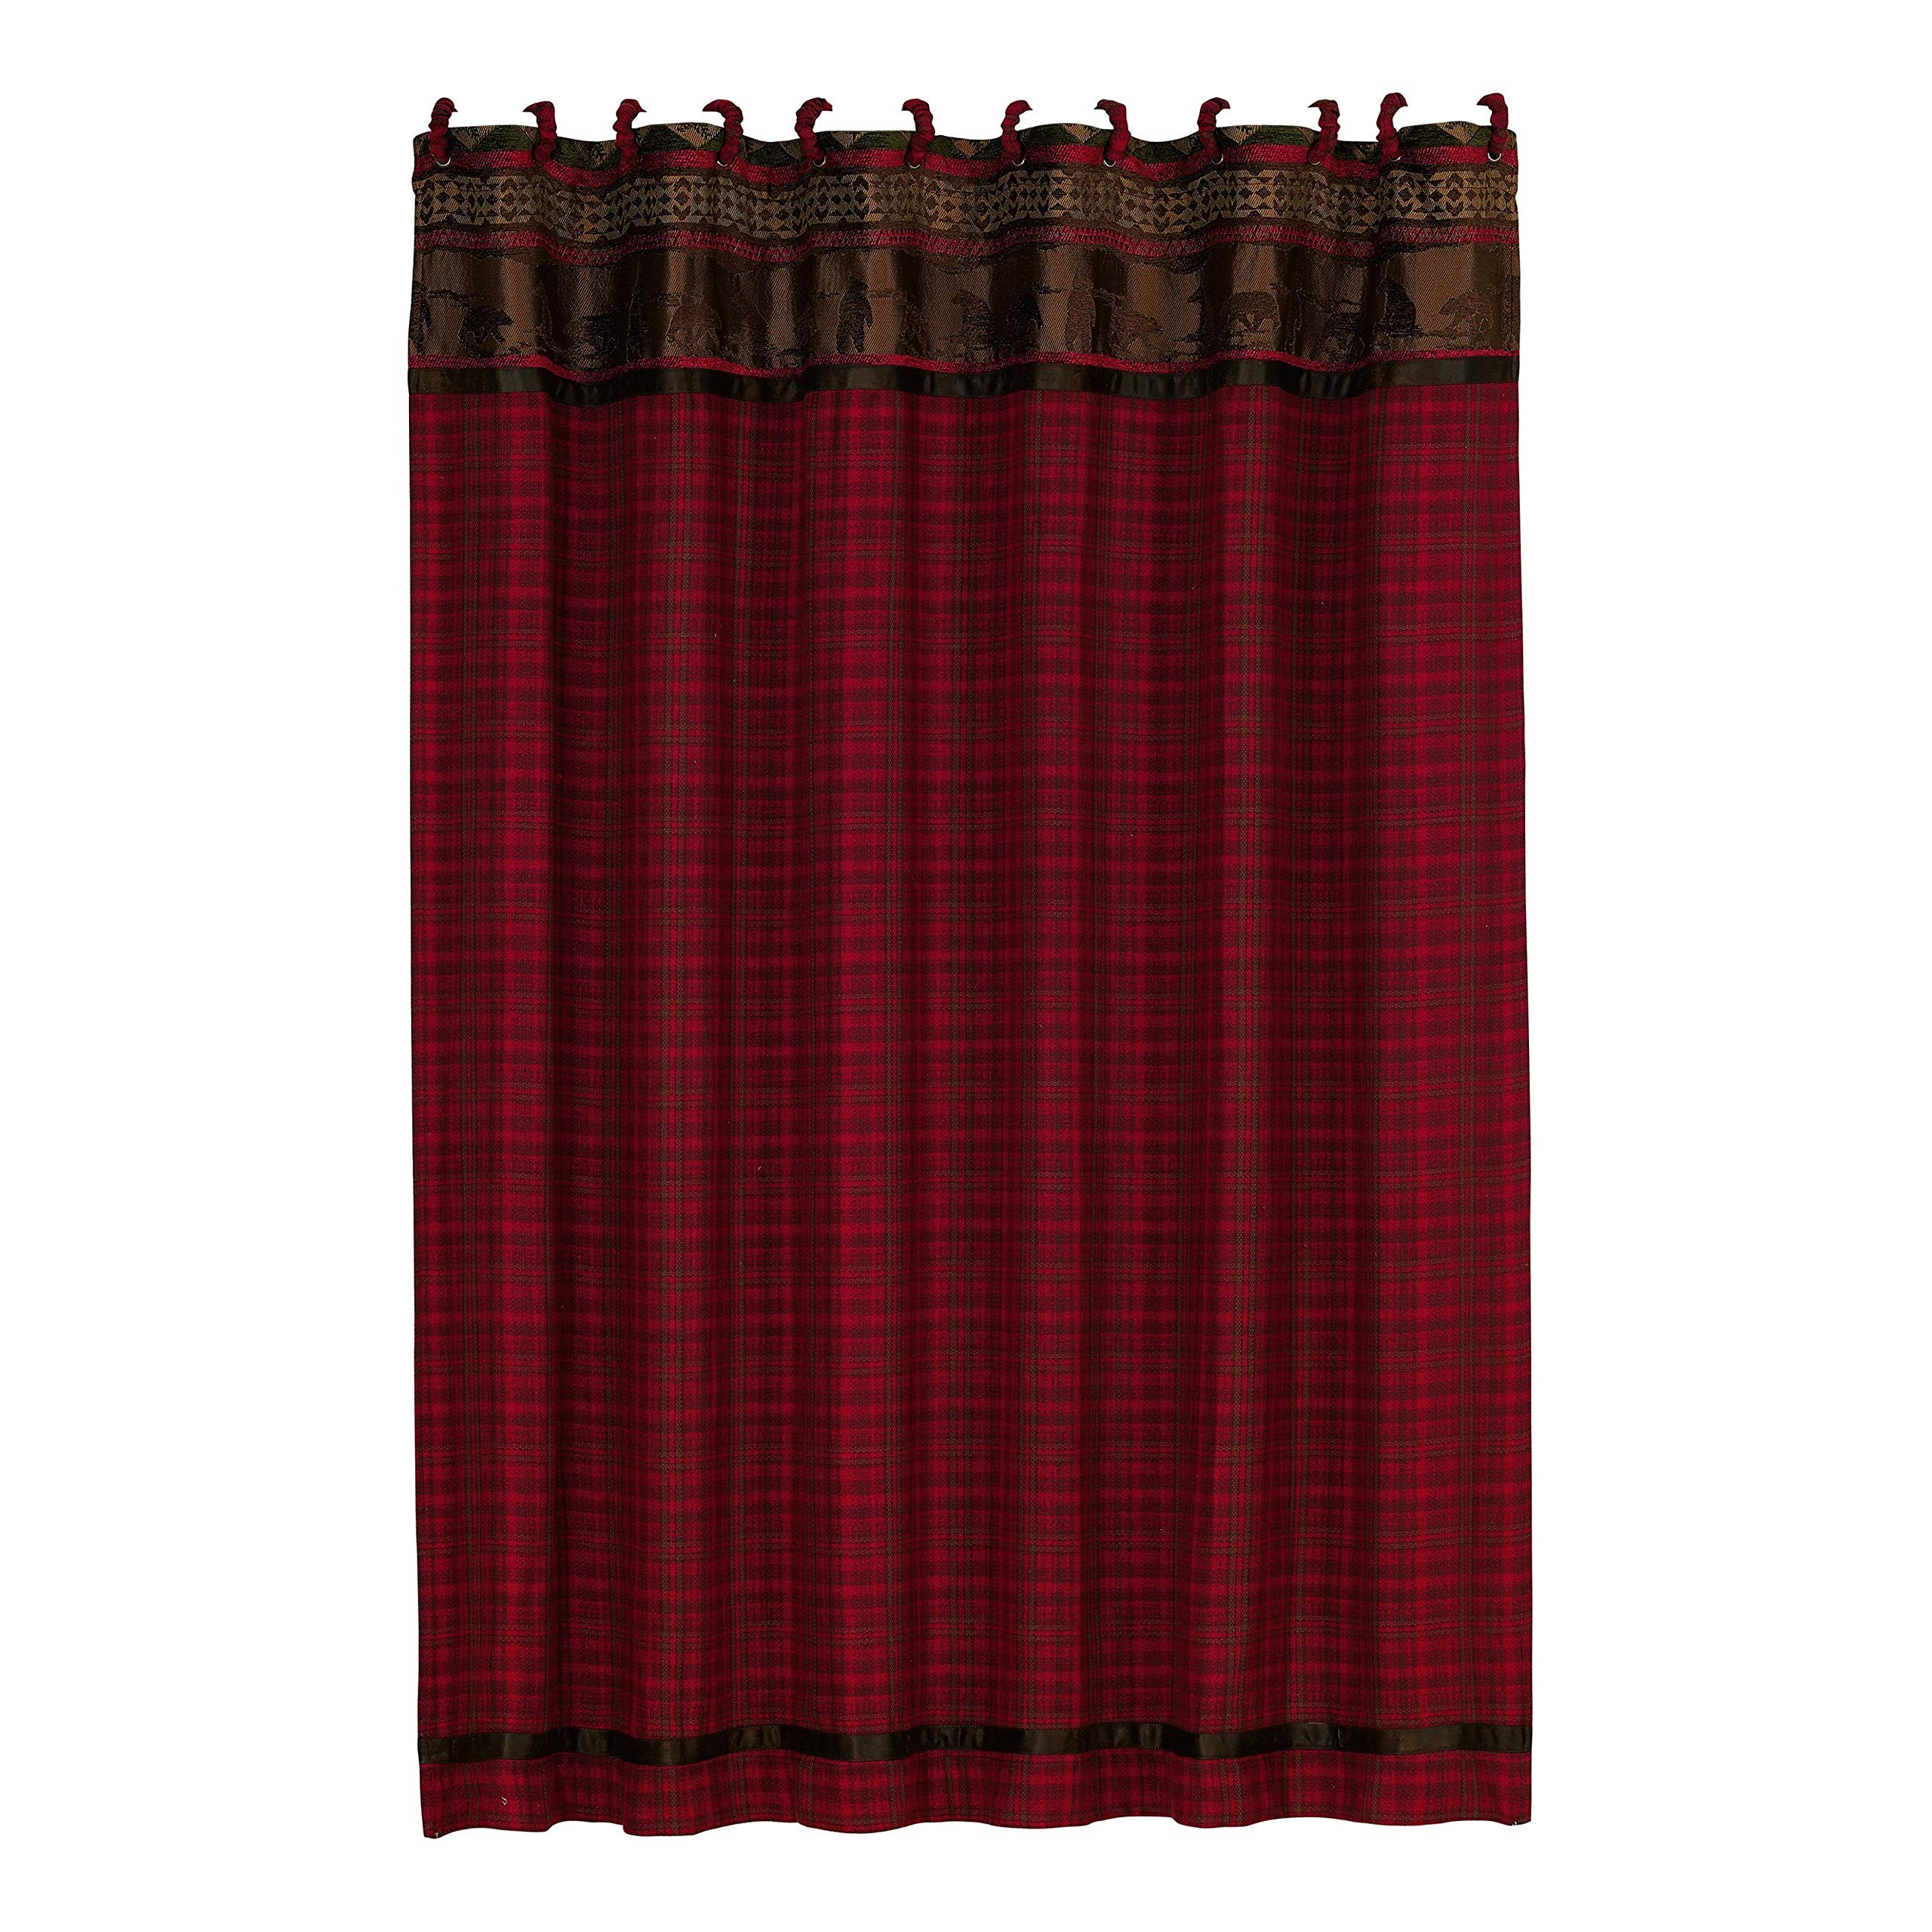 HiEnd Accents Cascade Lodge Shower Curtain by HiEnd Accents (Image #2)